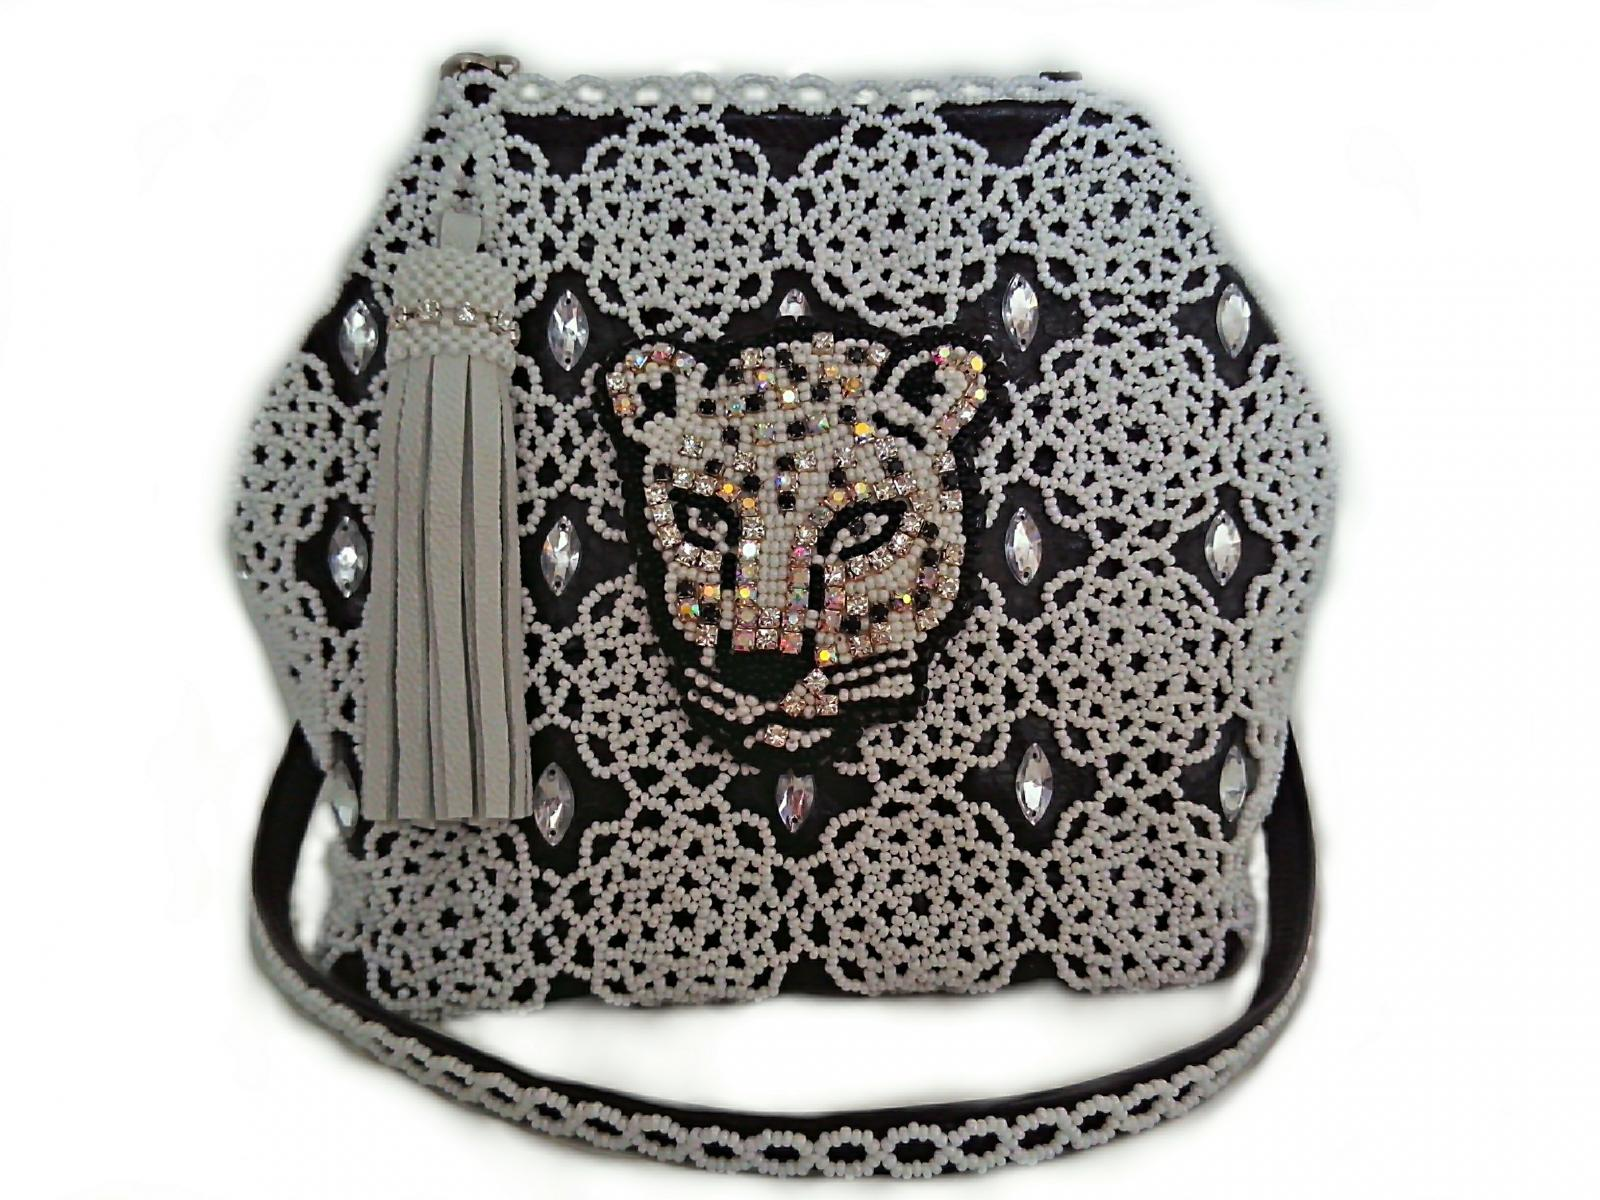 16-bag-beaded-clutch-bedsmagic